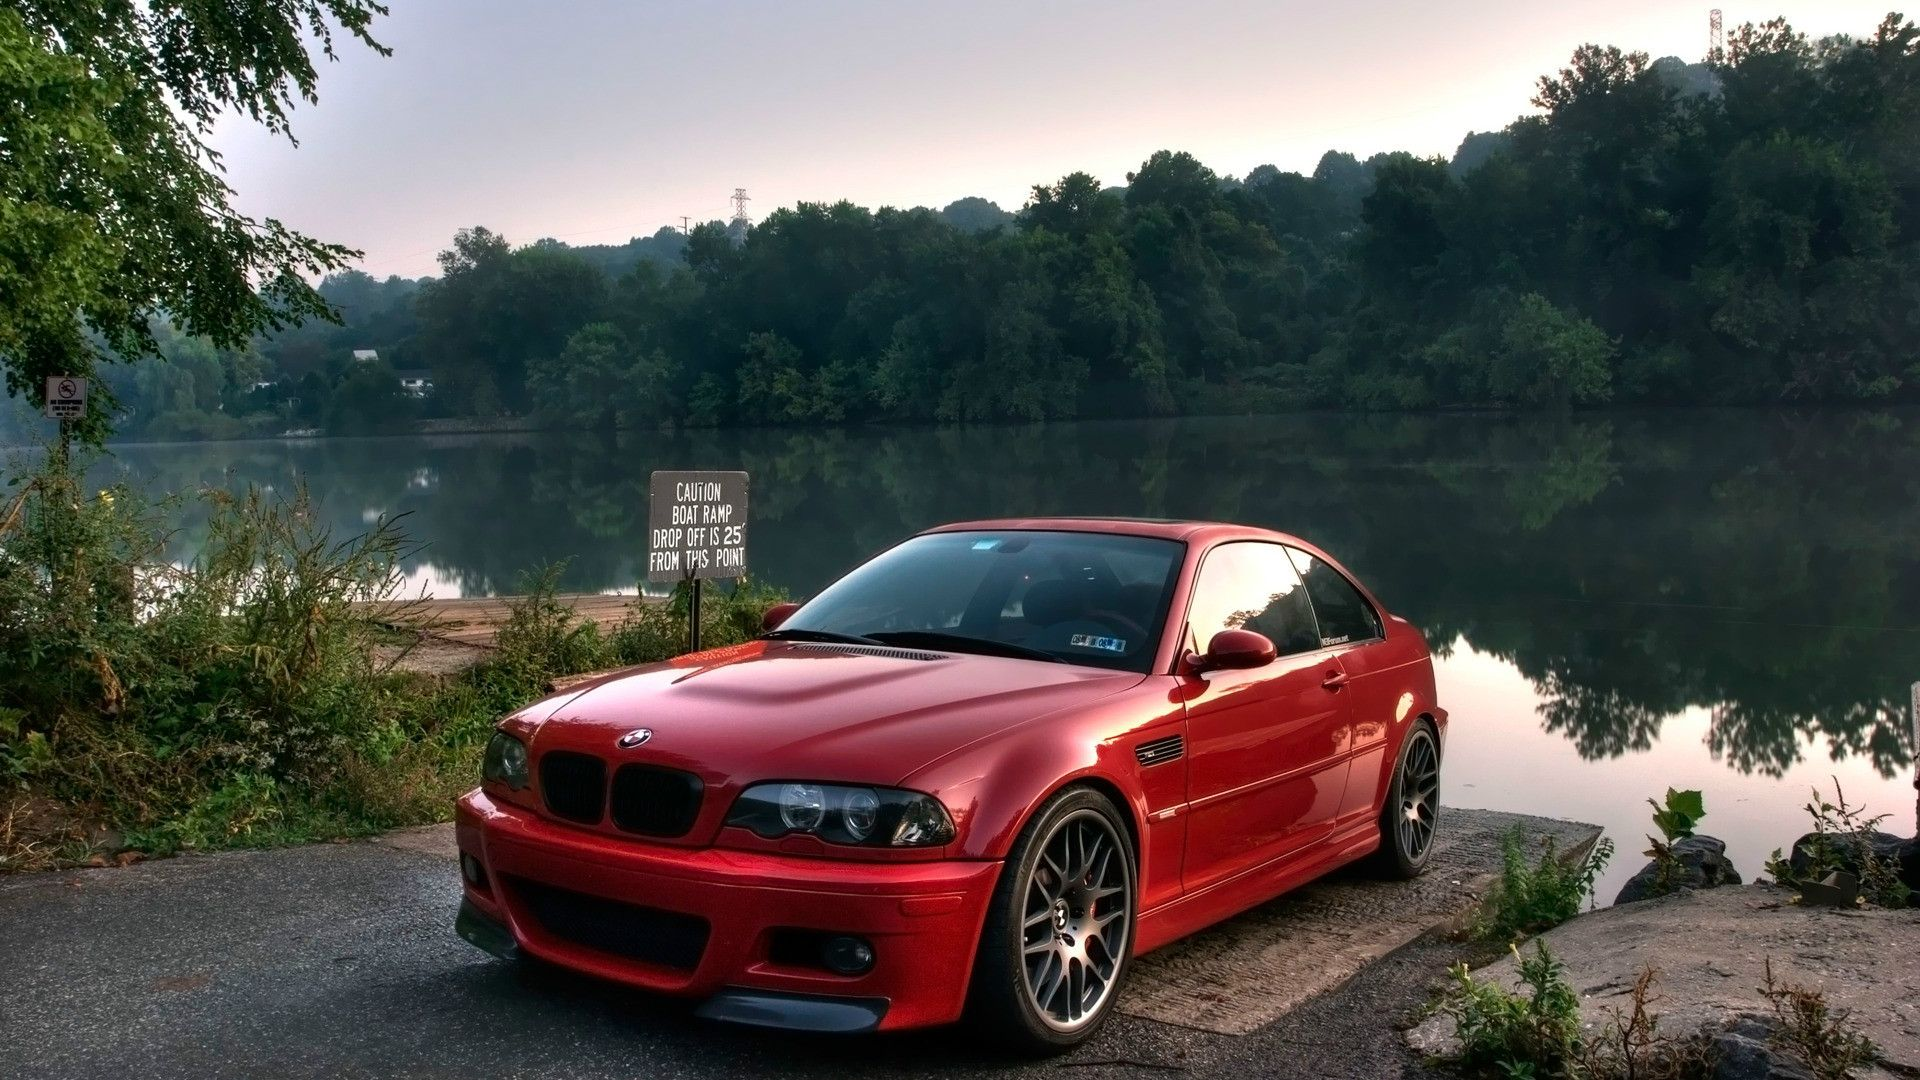 Picture 2017 Hd Red Bmw M3 E46 Wallpaper Cars Images